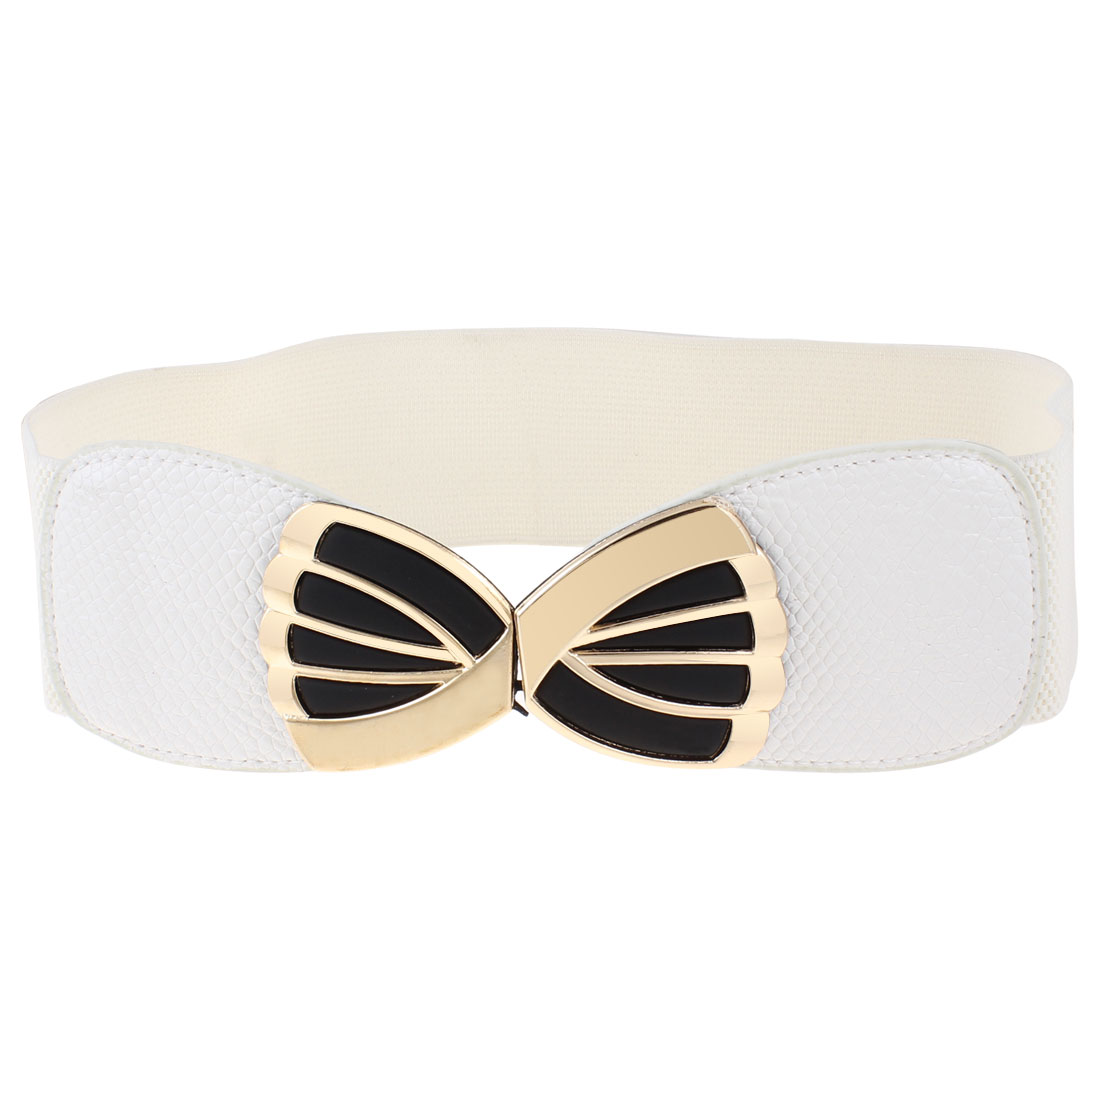 White Bowknot Shape Interlocking Buckle Elastic Band Waist Belt for Women